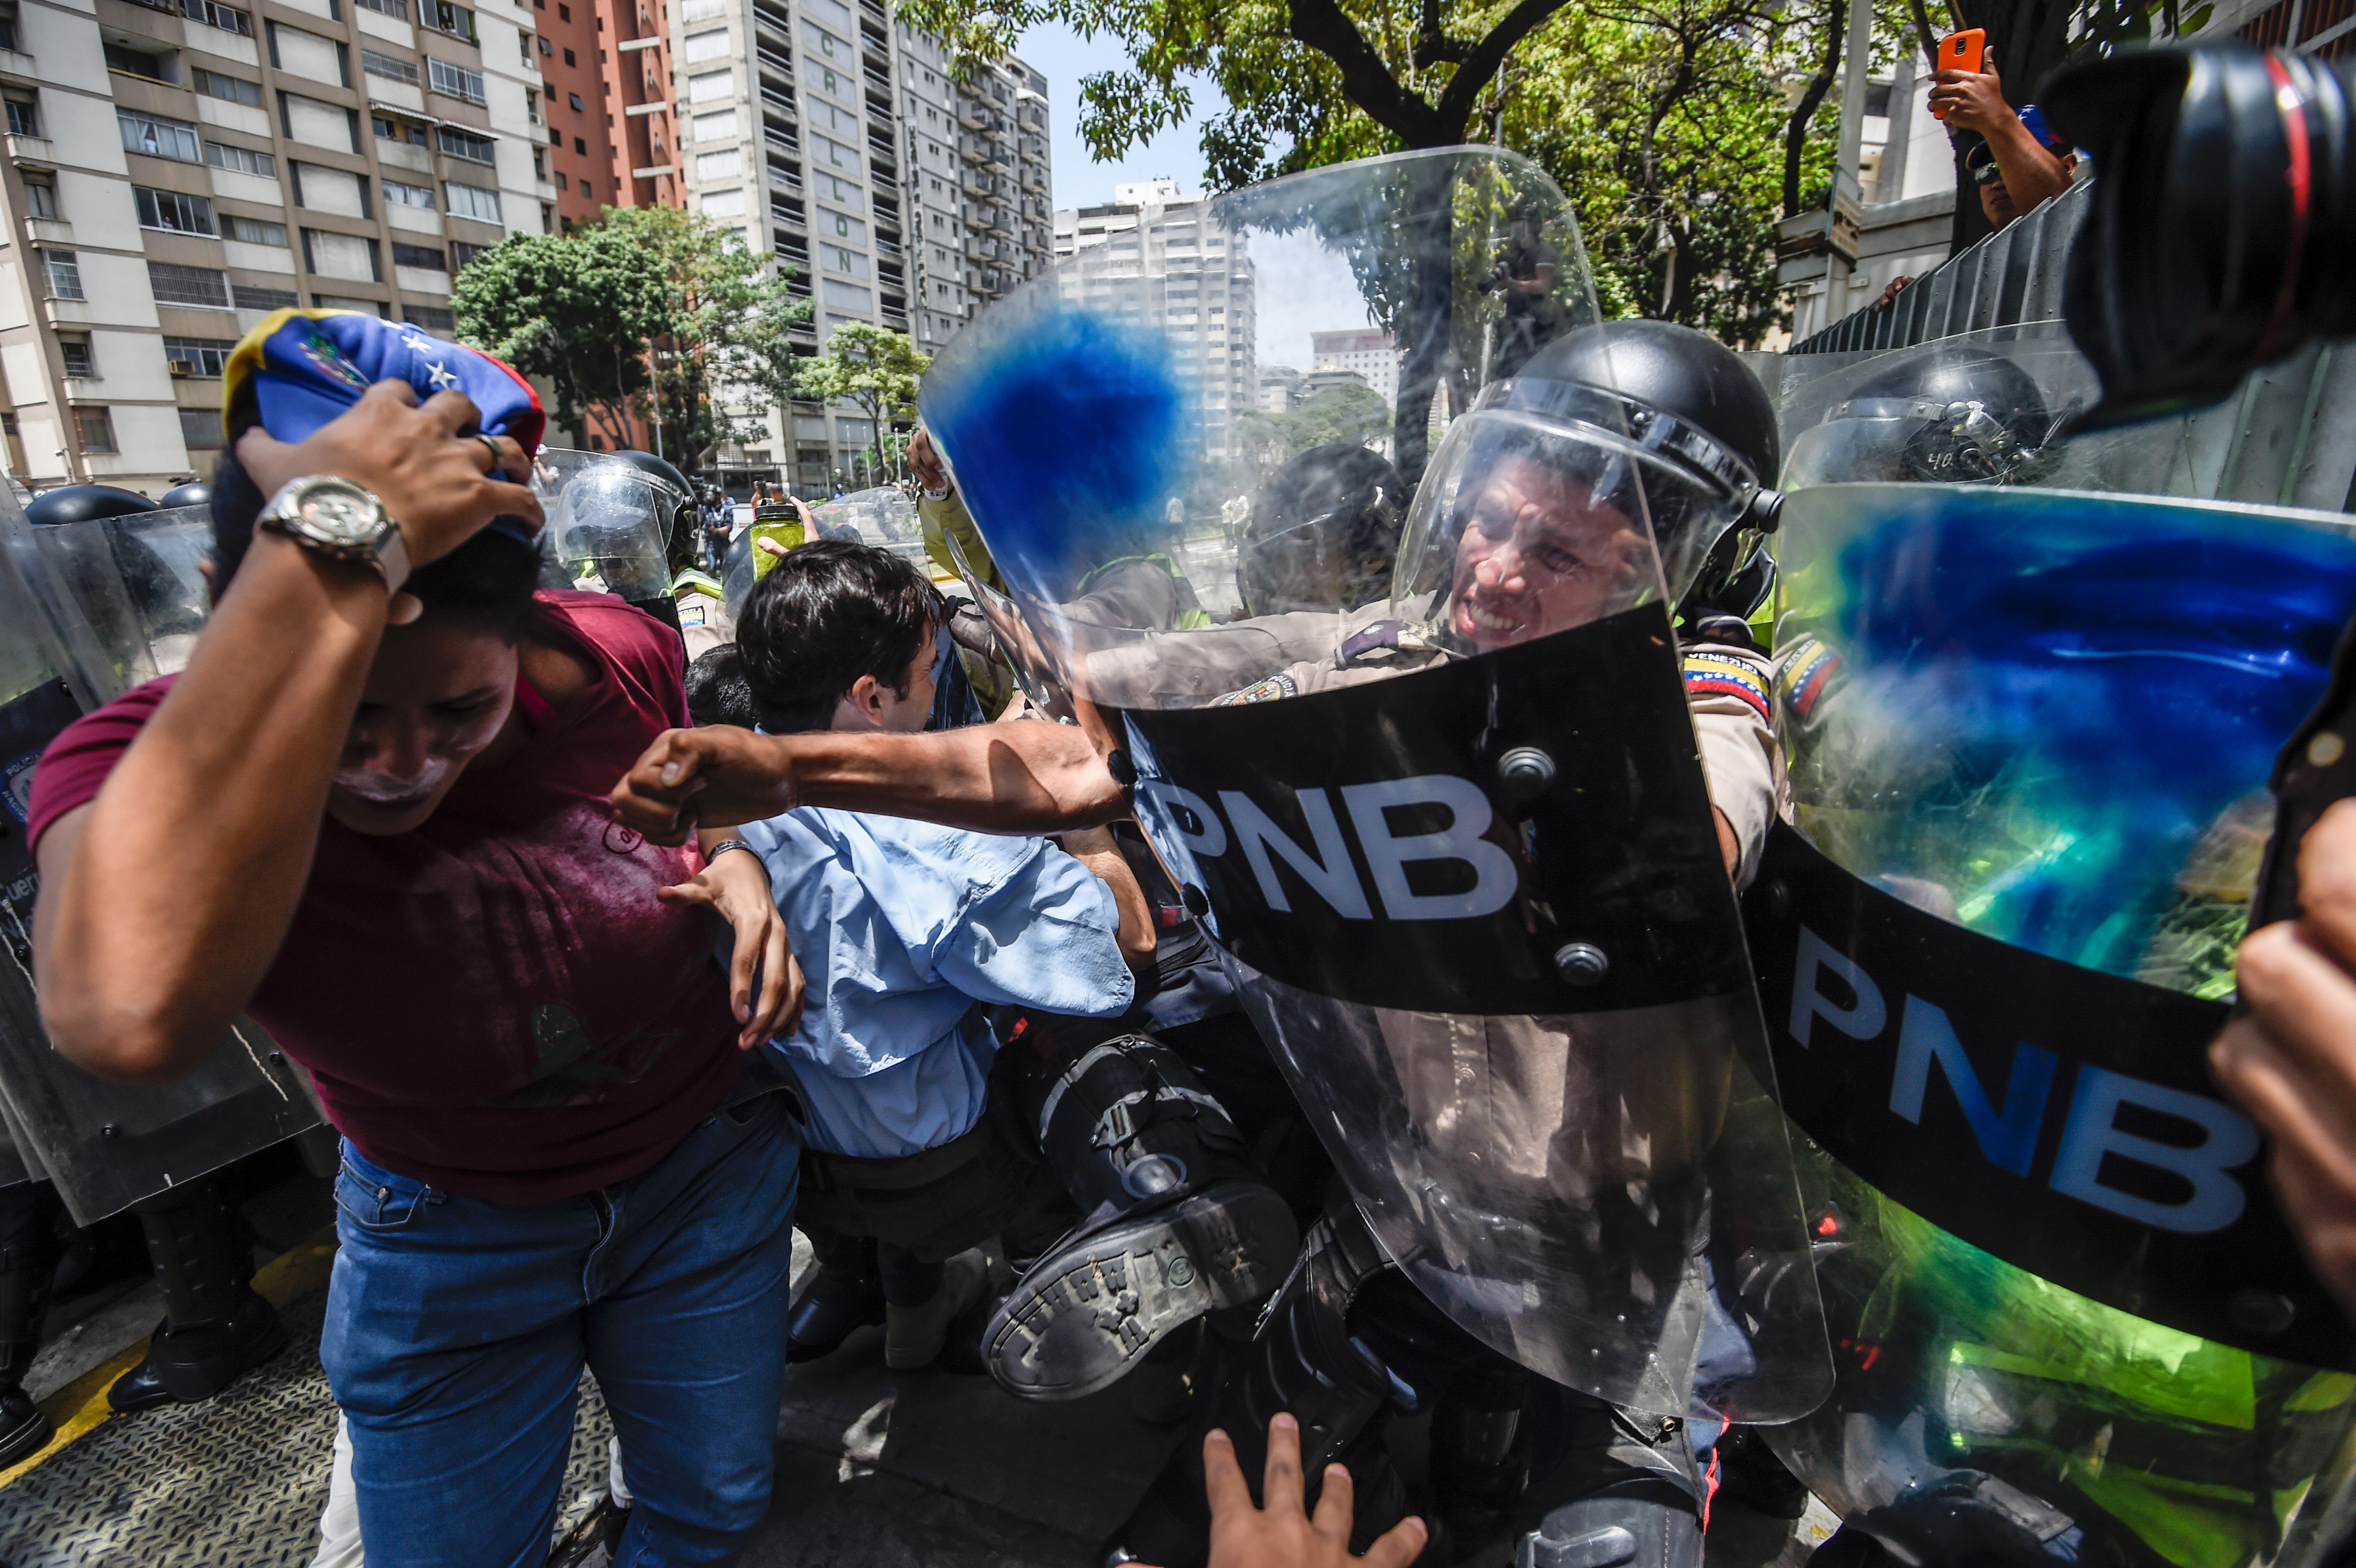 Venezuela's opposition activists scuffle with riot police during a protest against Nicolas Maduro's government in Caracas, Apr. 4, 2017.